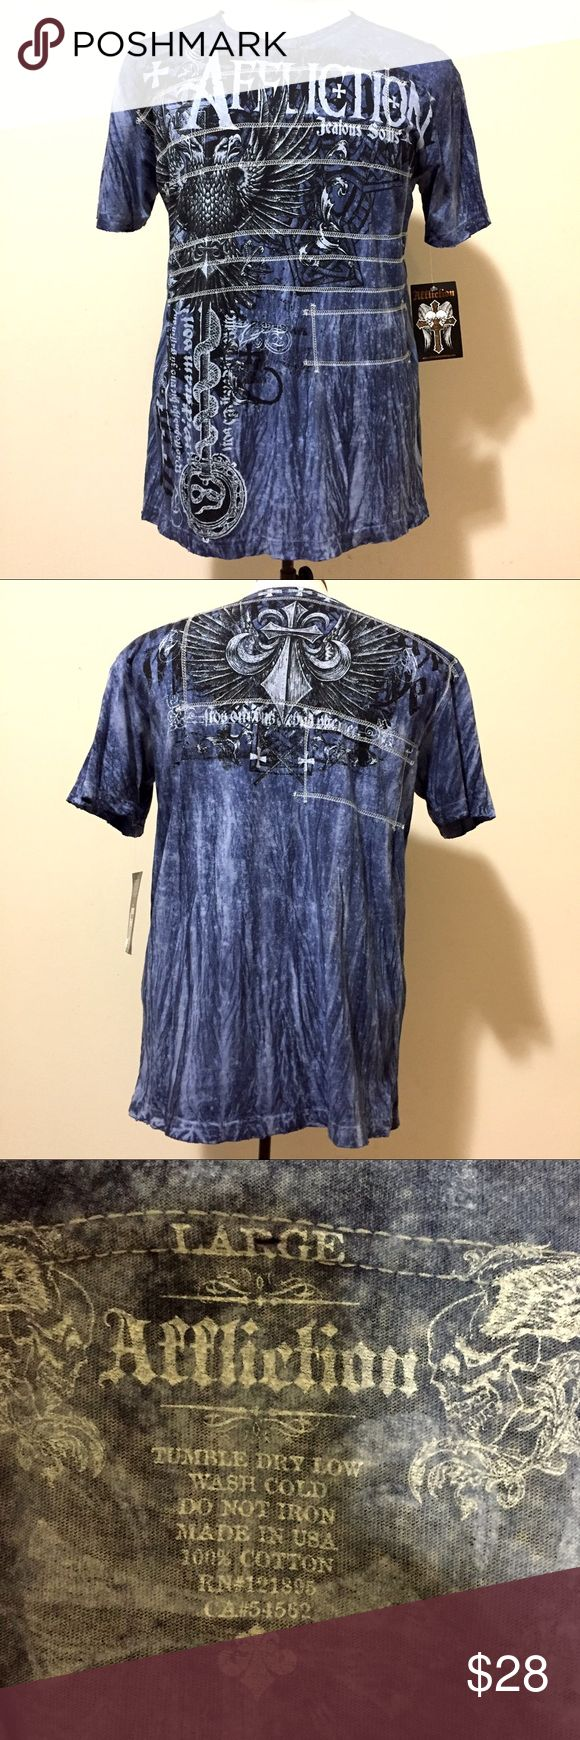 NWT Men's Affliction Eagle T Shirt SZ L This men's Affliction jealous souls tribal shirt is brand new with tags. Size Large. Purchased from Macy's. Tried no return, but can't since it was over three months ago according to the cashier 😐 Affliction Shirts Tees - Short Sleeve